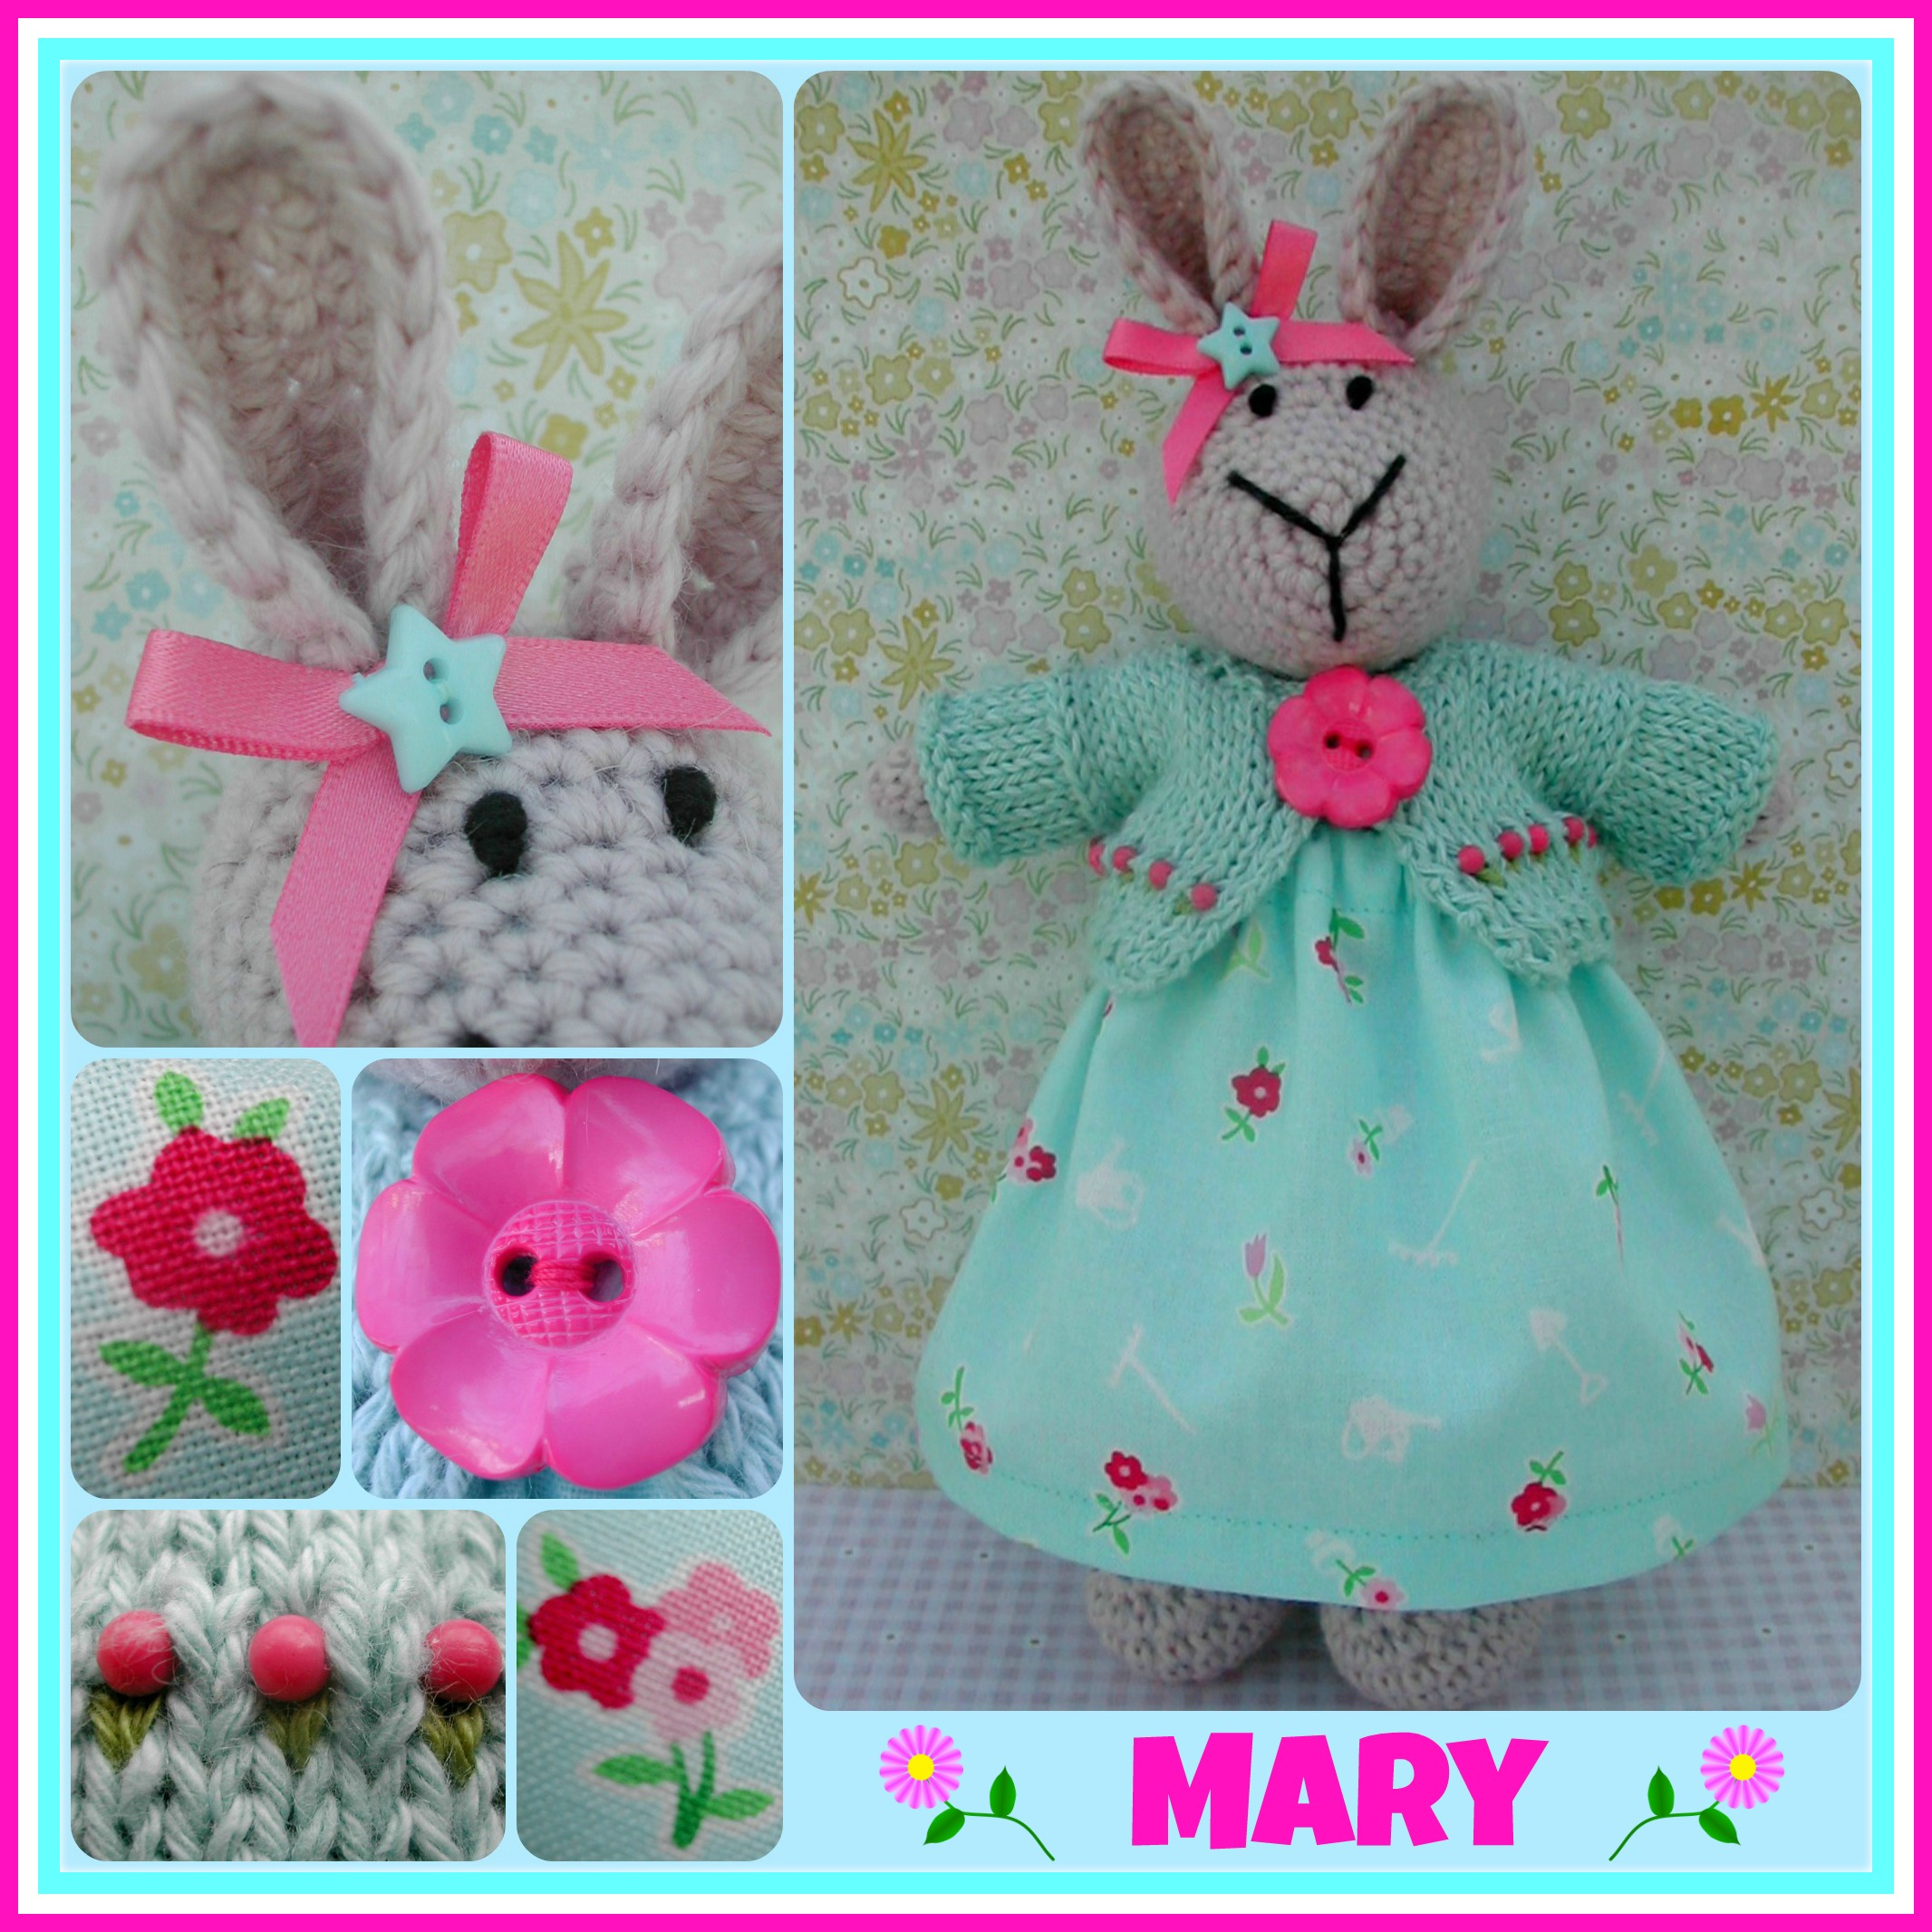 Mary Collage